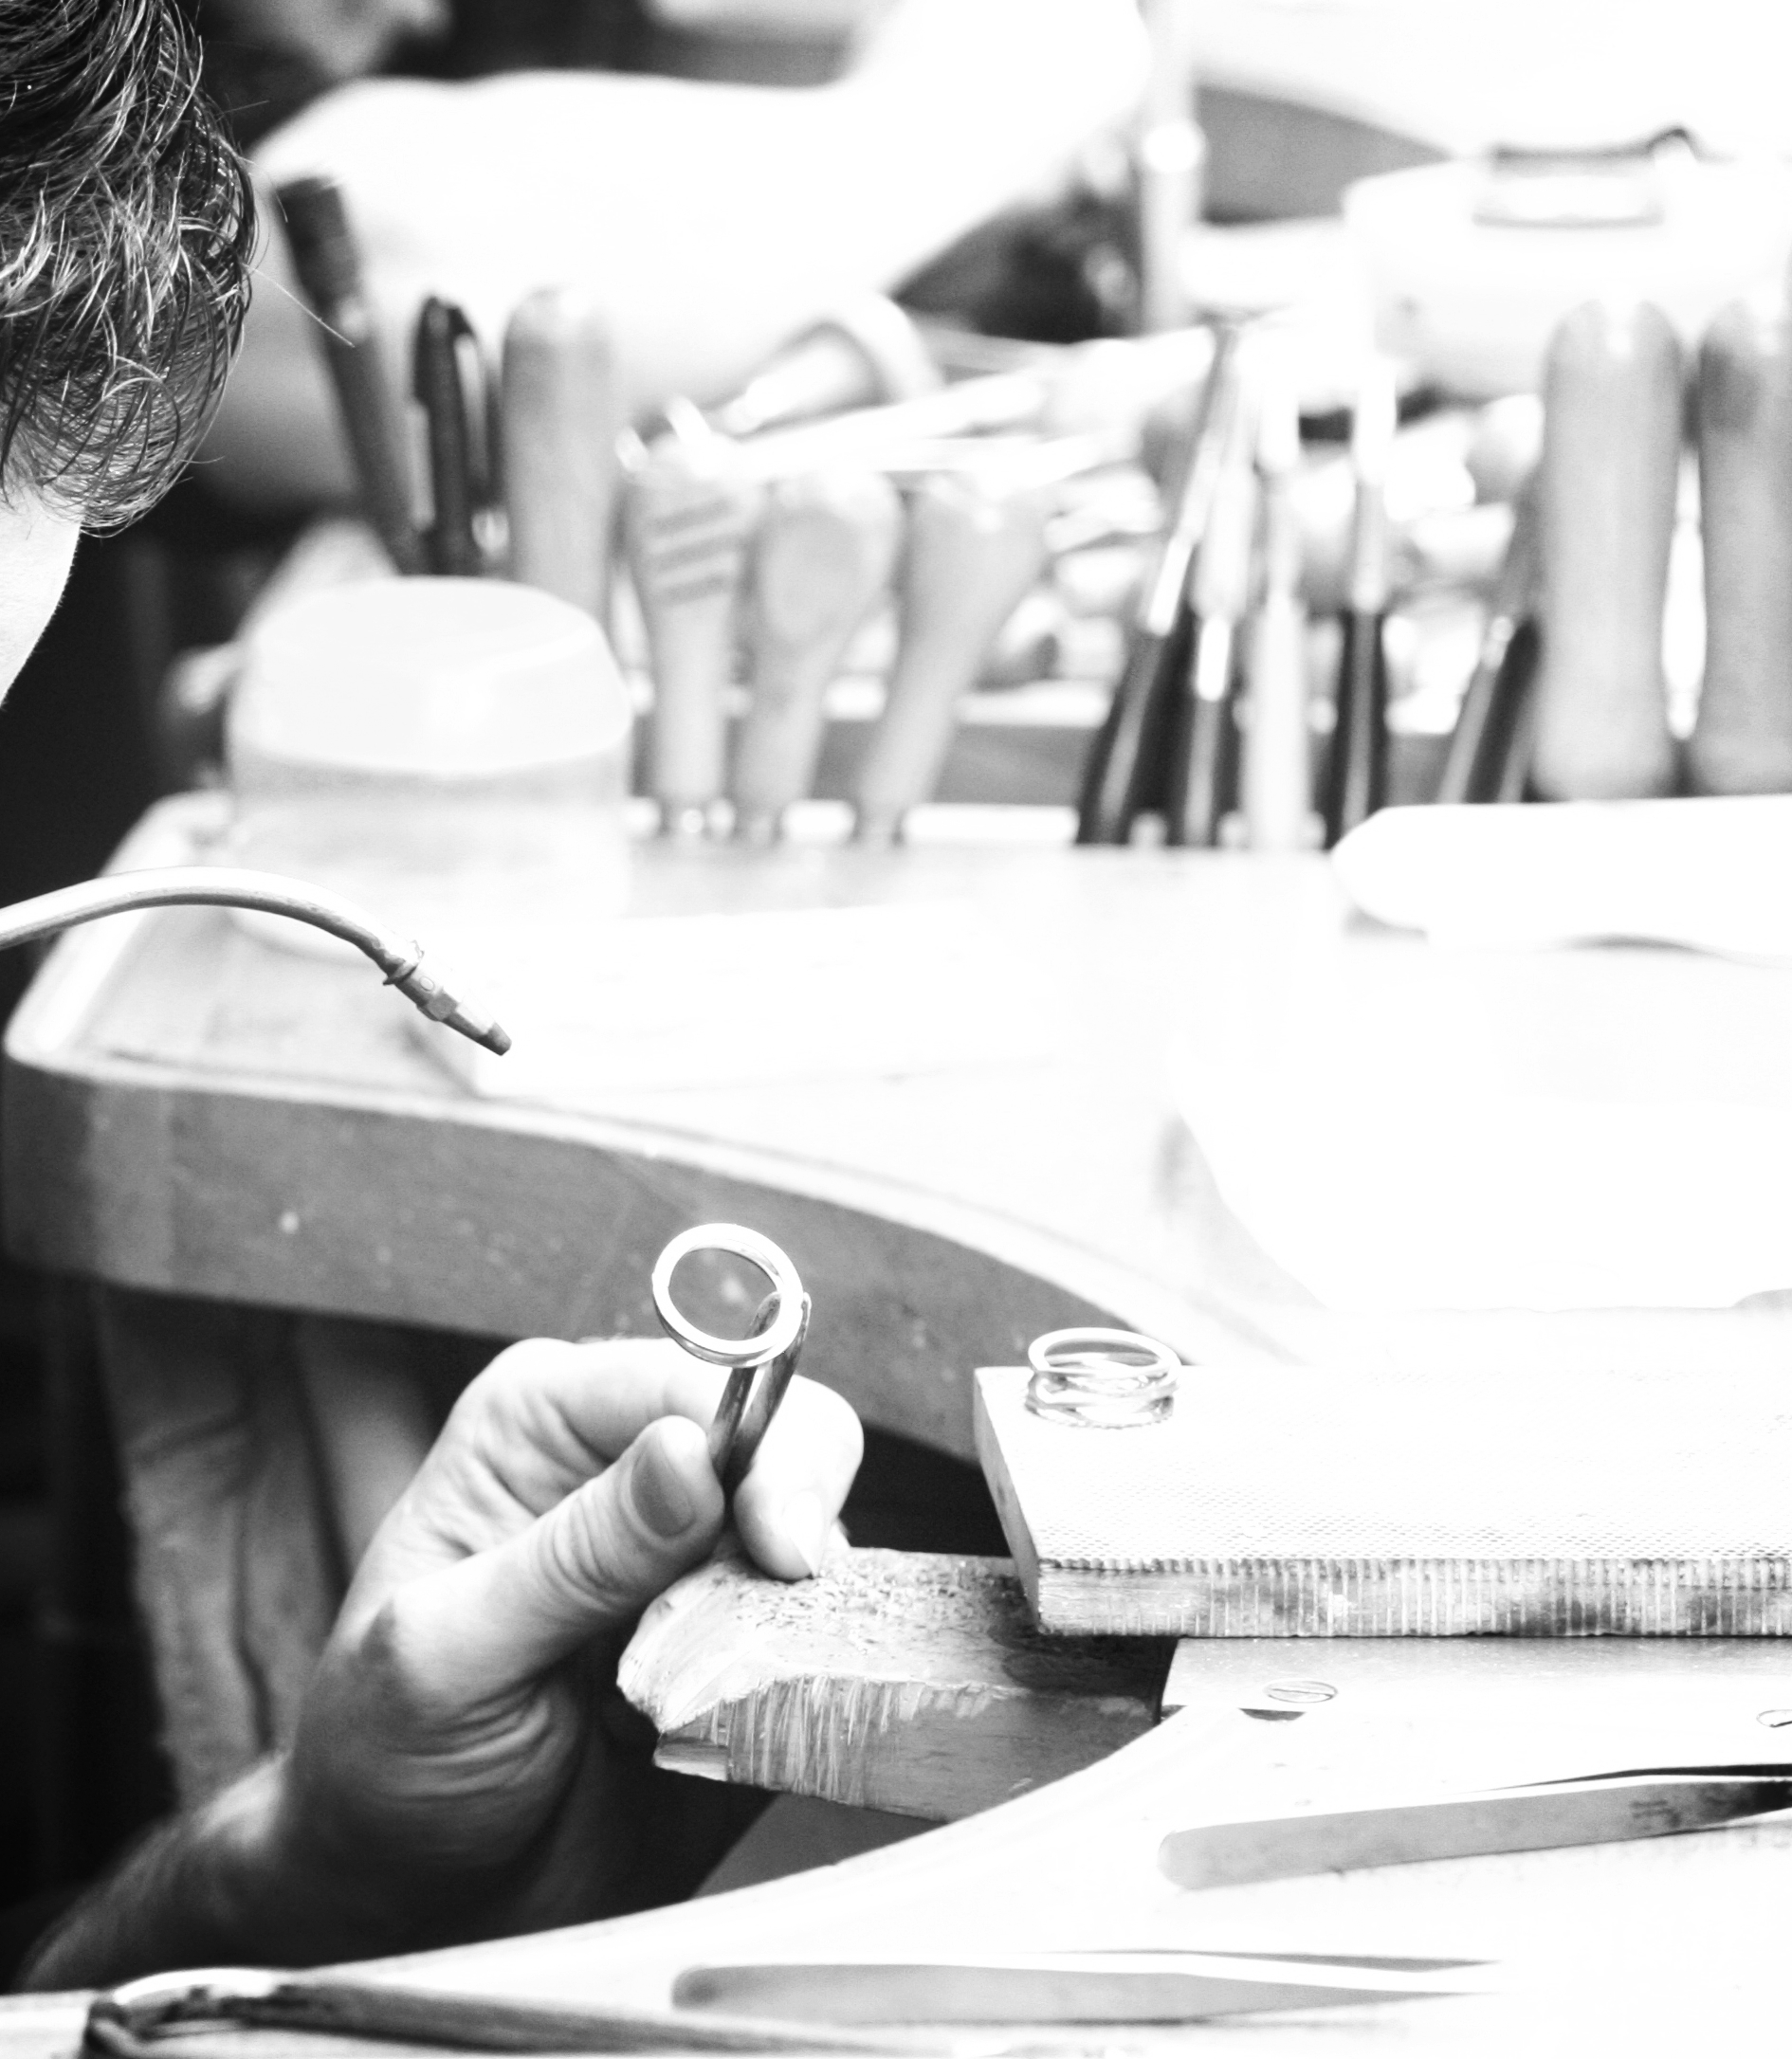 How does this work? - You start by making an appointment with the jeweler. Here we discuss your wishes and expectations. During this discussion the jeweler makes some rough sketches or illustrates, using some diamonds or gem stones, how the jewel will look.Then we get to work. With a great eye for detail and with love for the craft, our master-goldsmiths create your jewel from scratch.Each part, no matter how small, is crafted entirely by hand.The final step is finishing: every detail is carefully finished and polished.After everything is finished and checked for quality, we notify you that your jewel is ready.Like all our jewellery, your bespoke jewel enjoys a lifetime warranty.